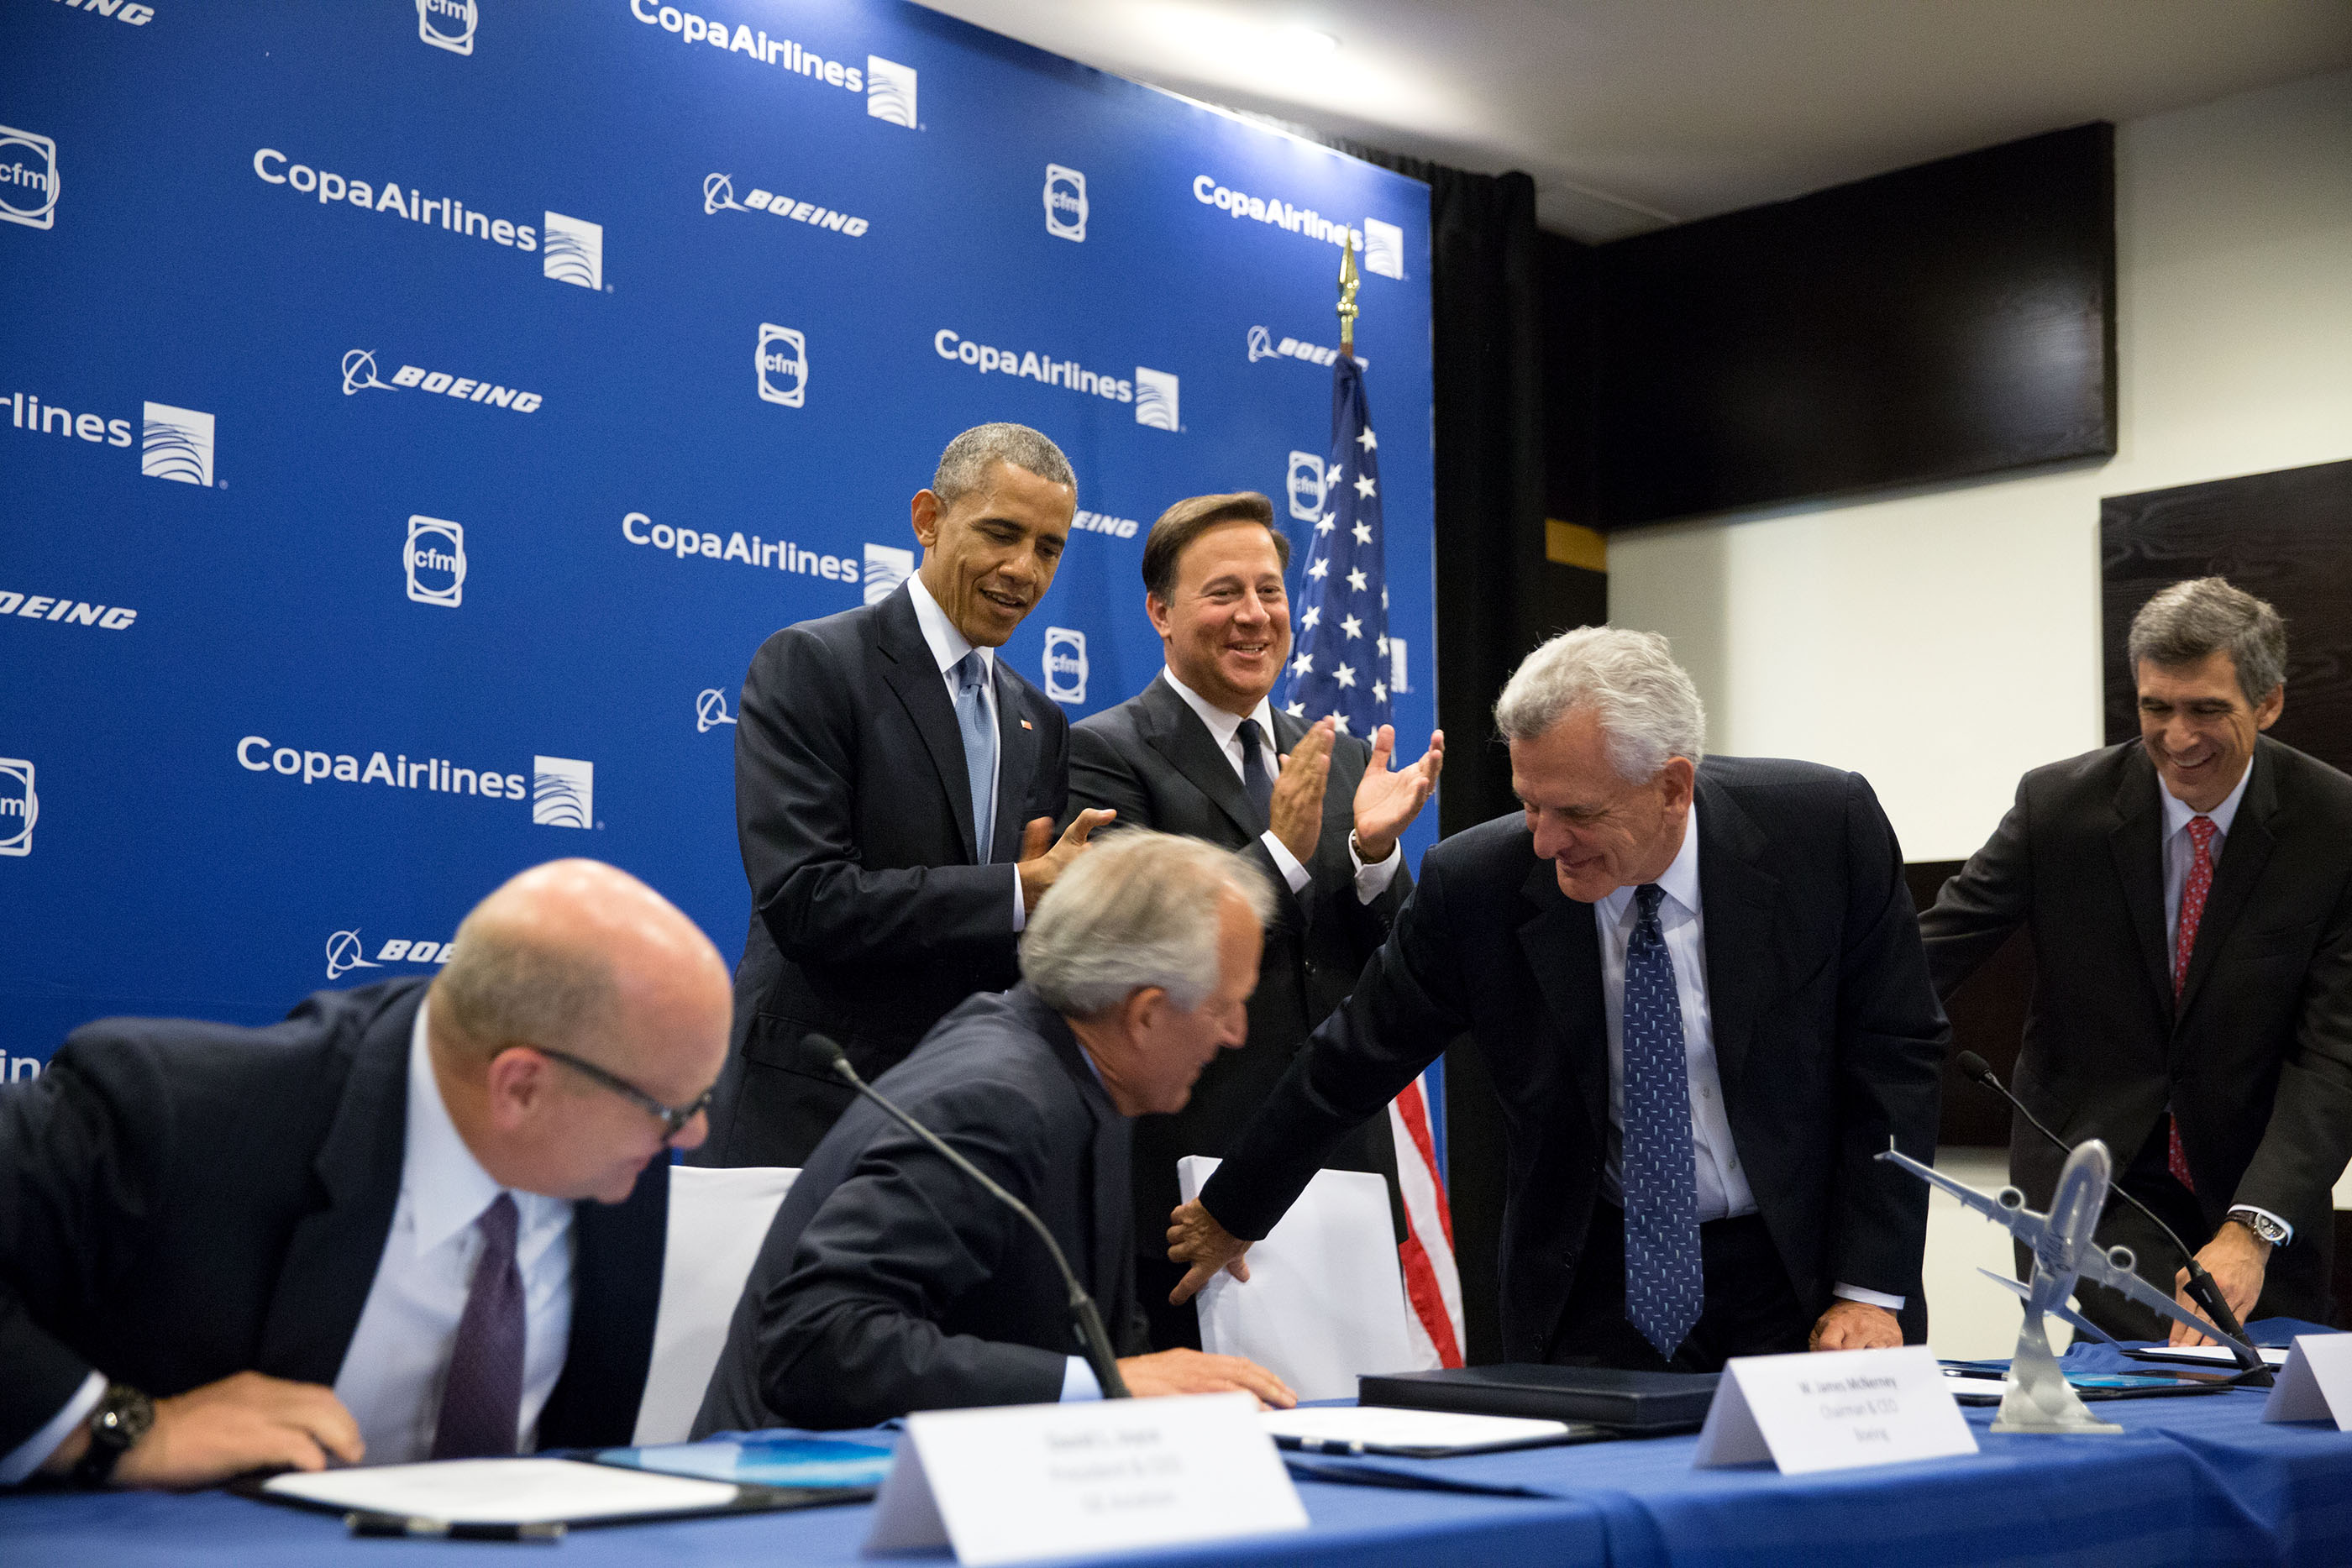 President Obama and President Varela of Panama applaud after the signing of Boeing Trade deal, a 6.6 billion purchase by Panama's Copa Airlines and Boeing for 61 737-MAX planes. (Official White House Photo by Pete Souza)